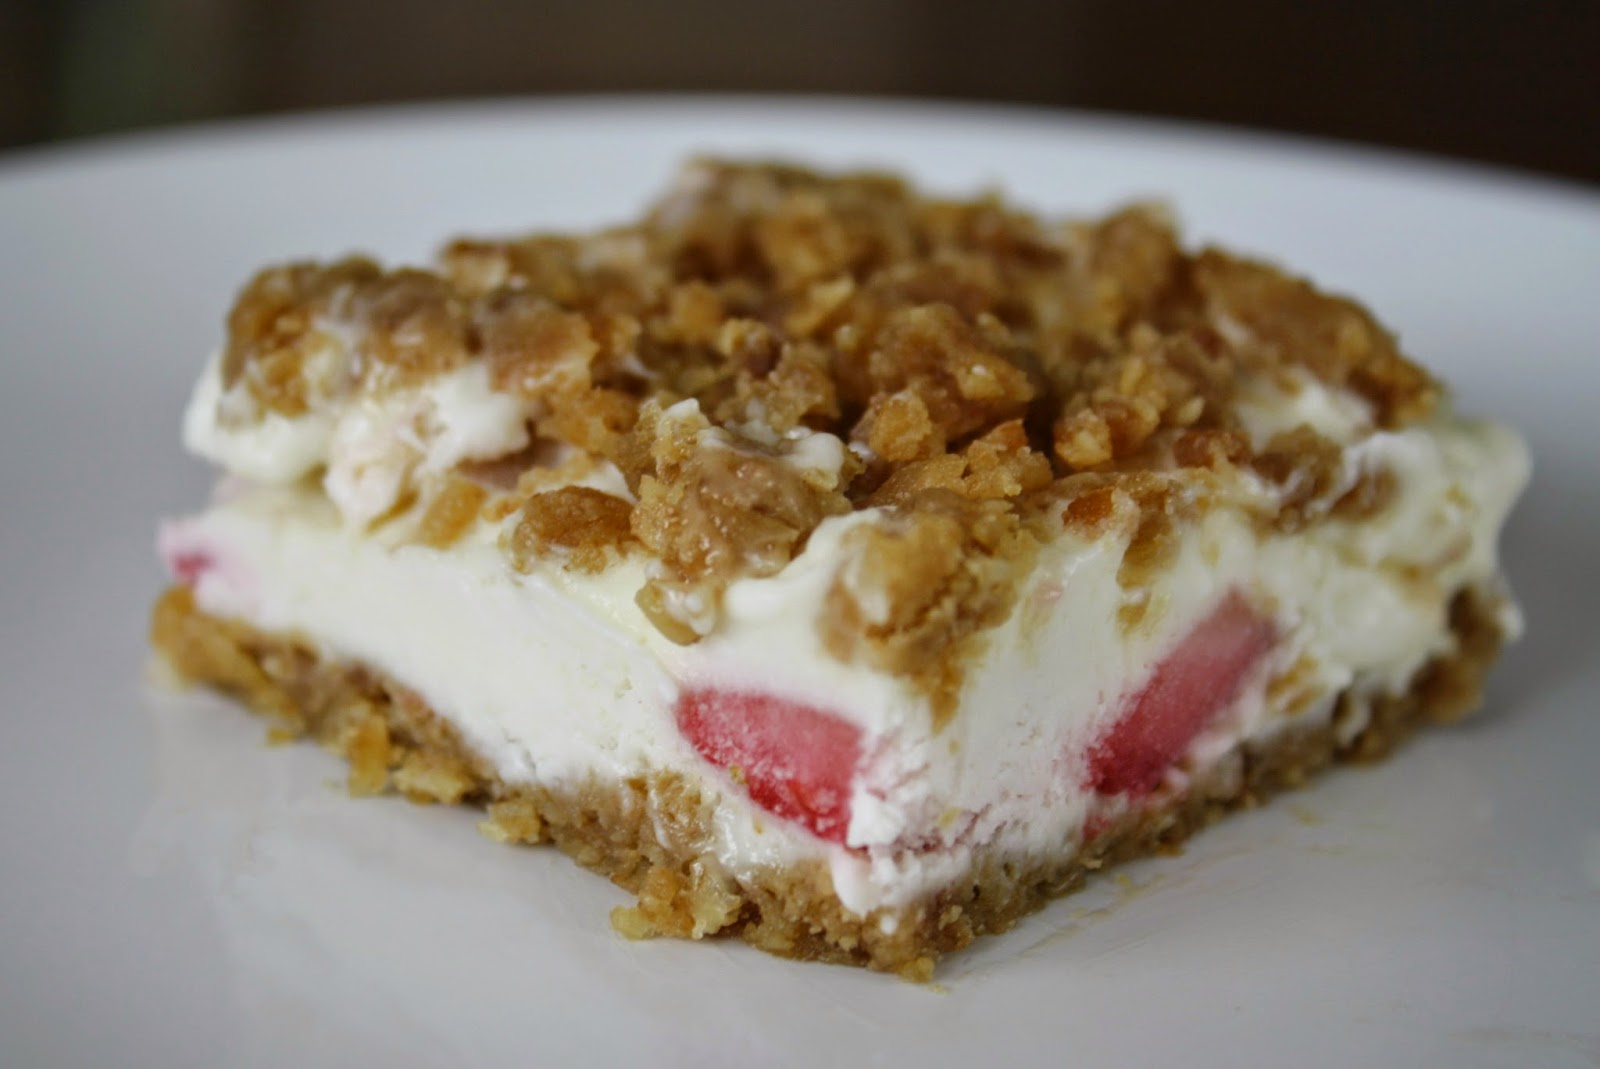 http://www.livealittlewilderblog.com/2014/04/strawberry-crunch-cake-recipe.html